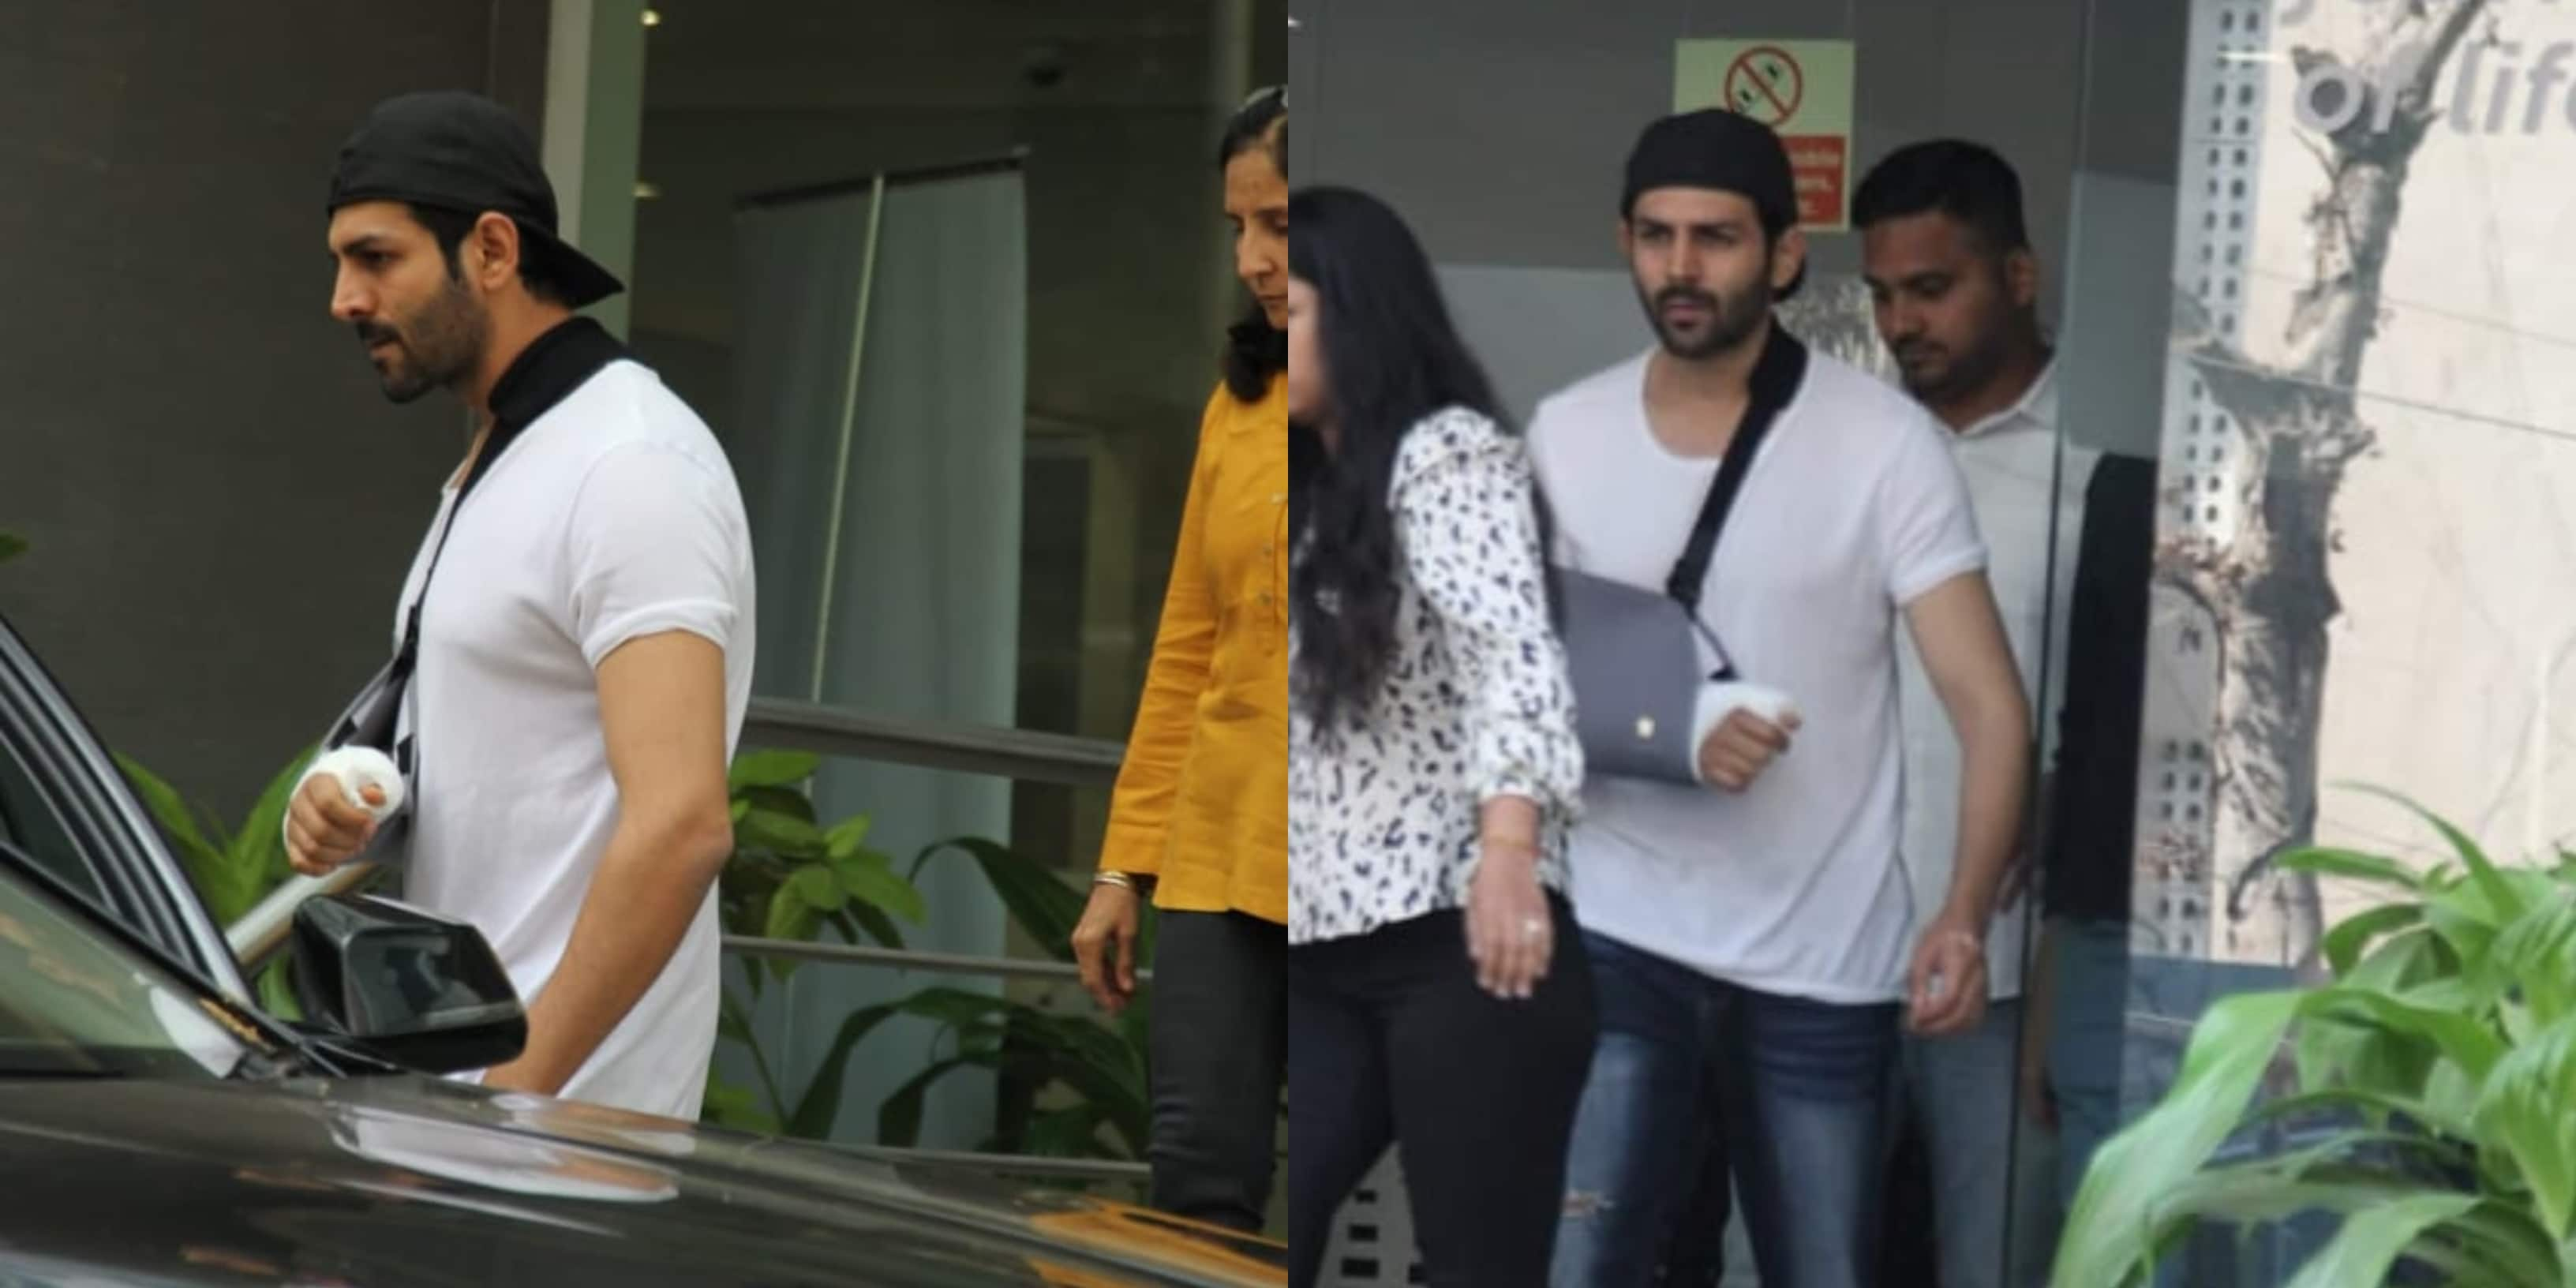 Kartik Aaryan Doesn't Let Work Suffer Even Post Surgery, Seen At IIFA Awards Event Soon After Leaving Hospital